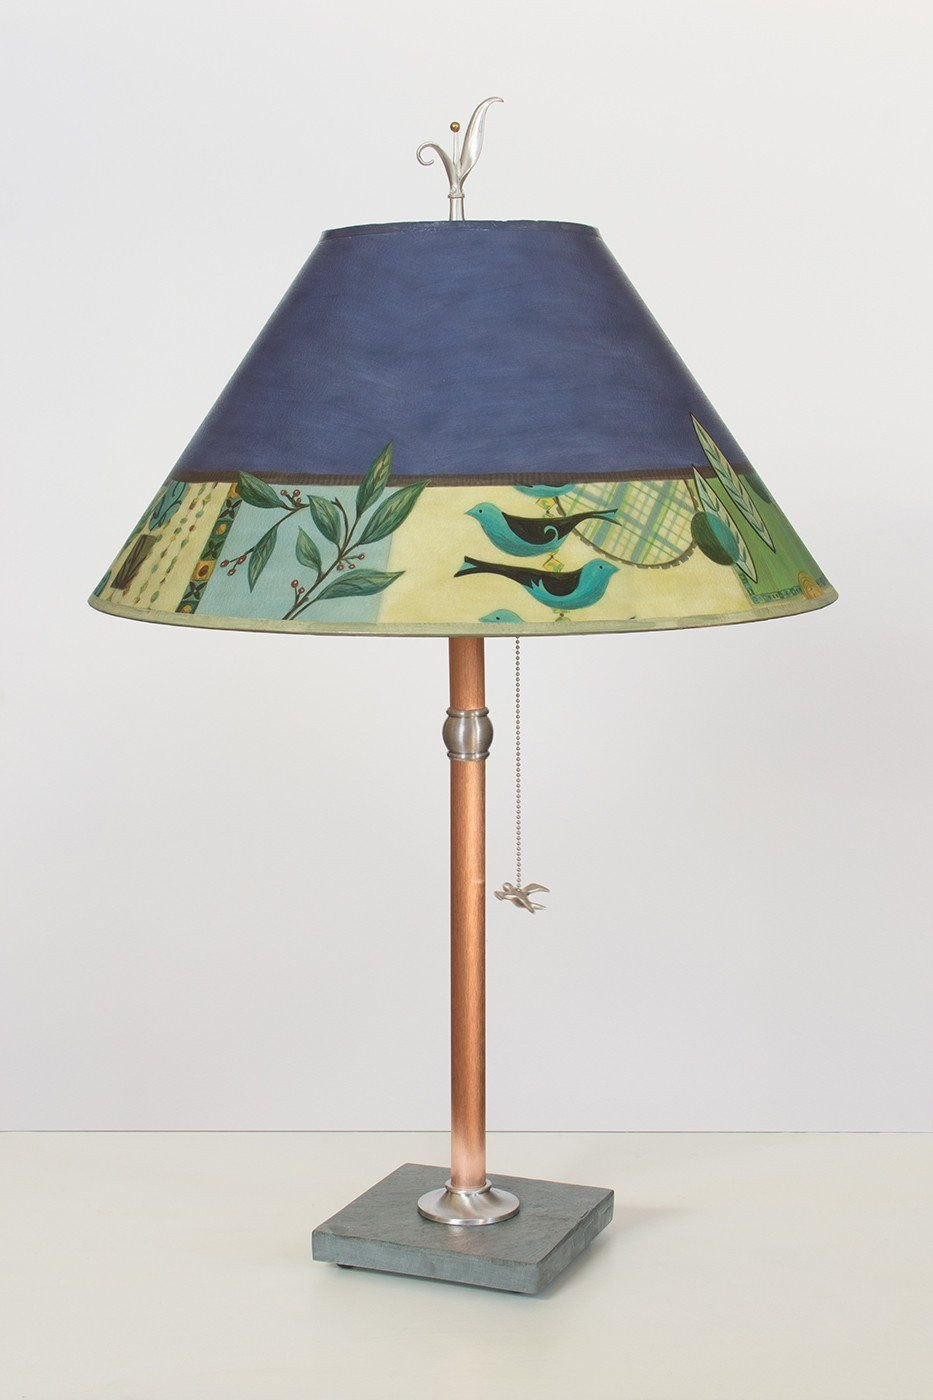 Copper Table Lamp on Vermont Slate with Large Conical Shade in New Capri Periwinkle